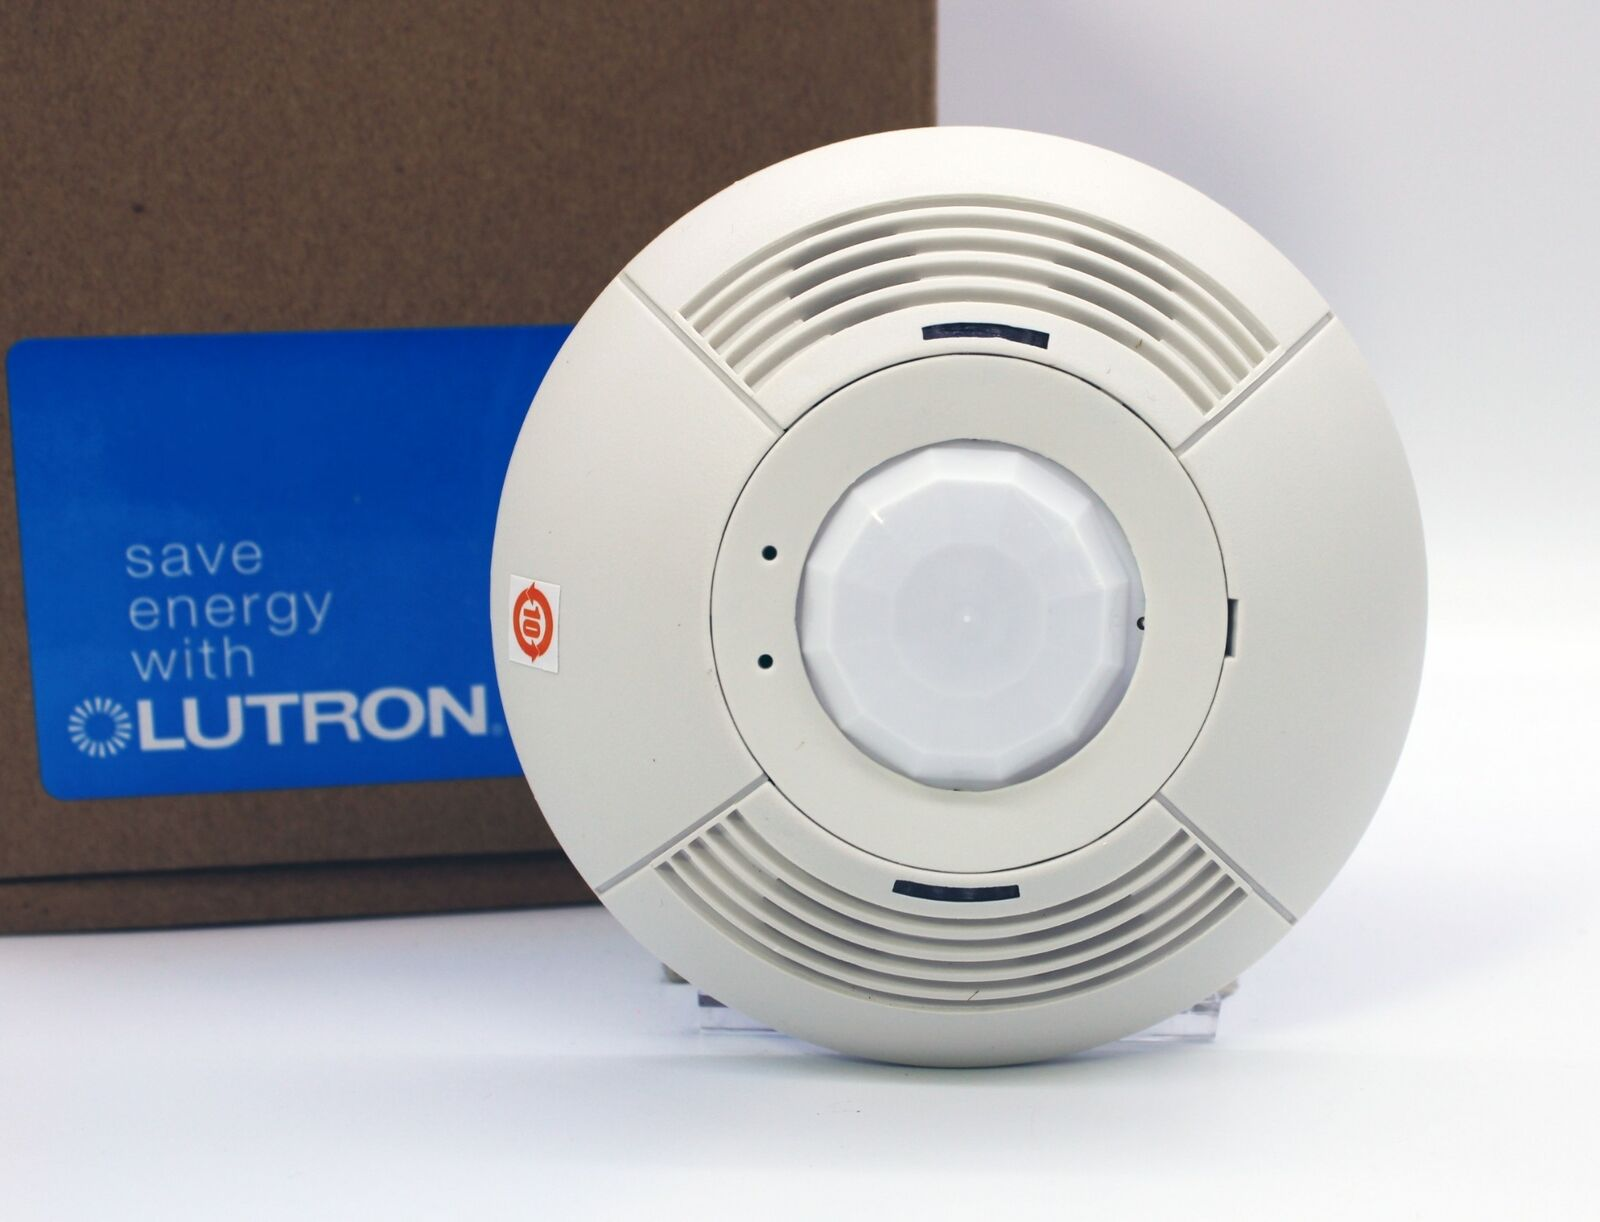 LUTRON LOS-CDT-2000-WH Ceiling Mount Occupancy Sensor BRAND NEW FREE SHIPPING